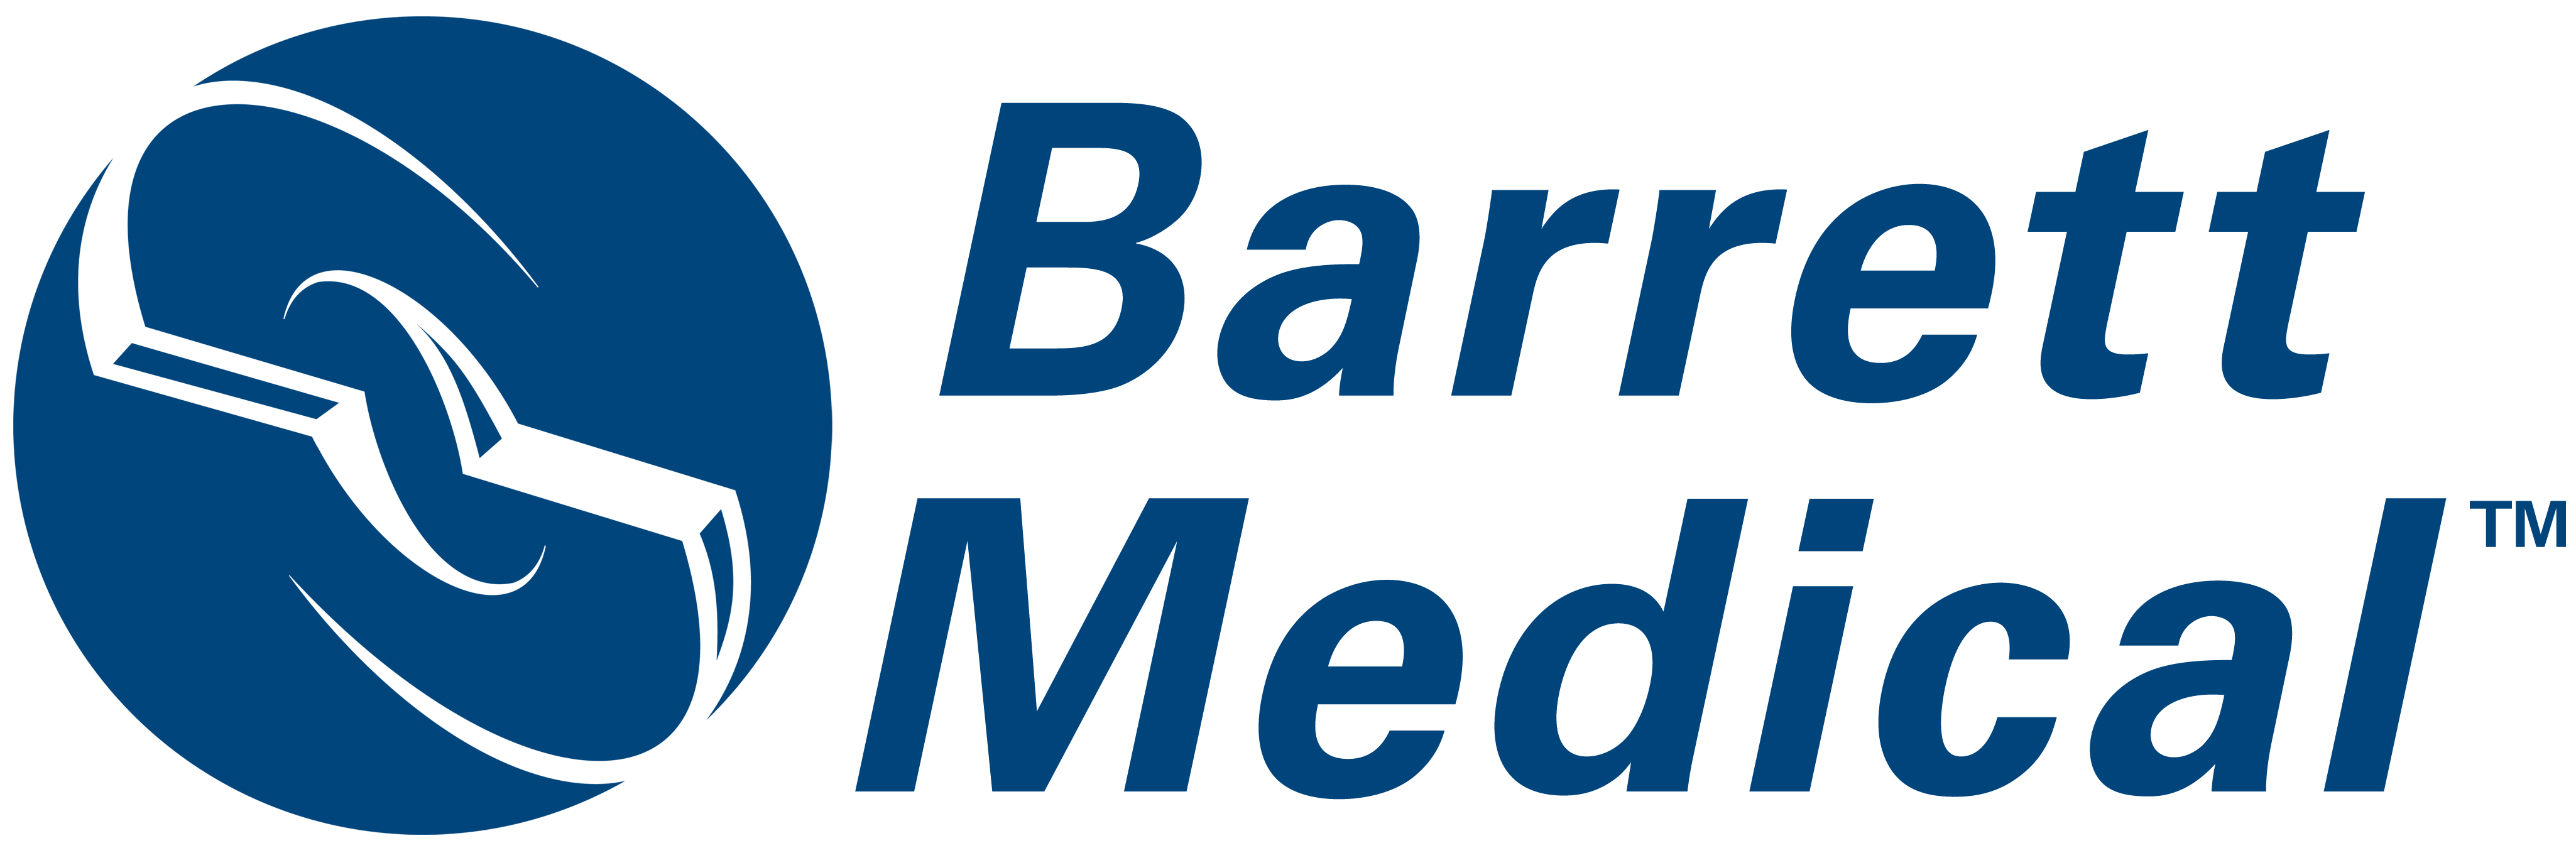 Barrett Medical logo